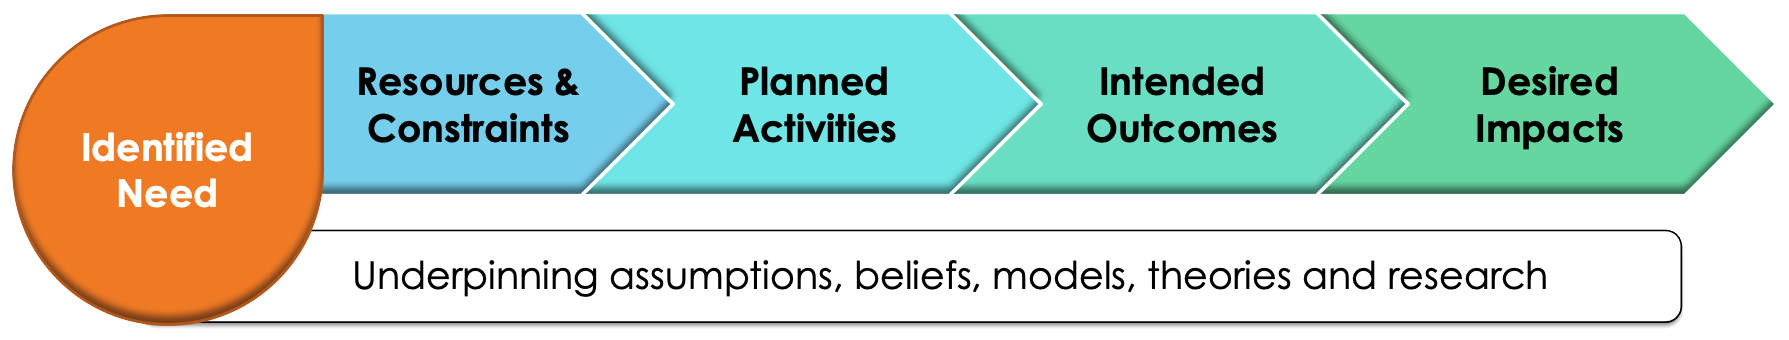 A Simplified Theory of Change Model